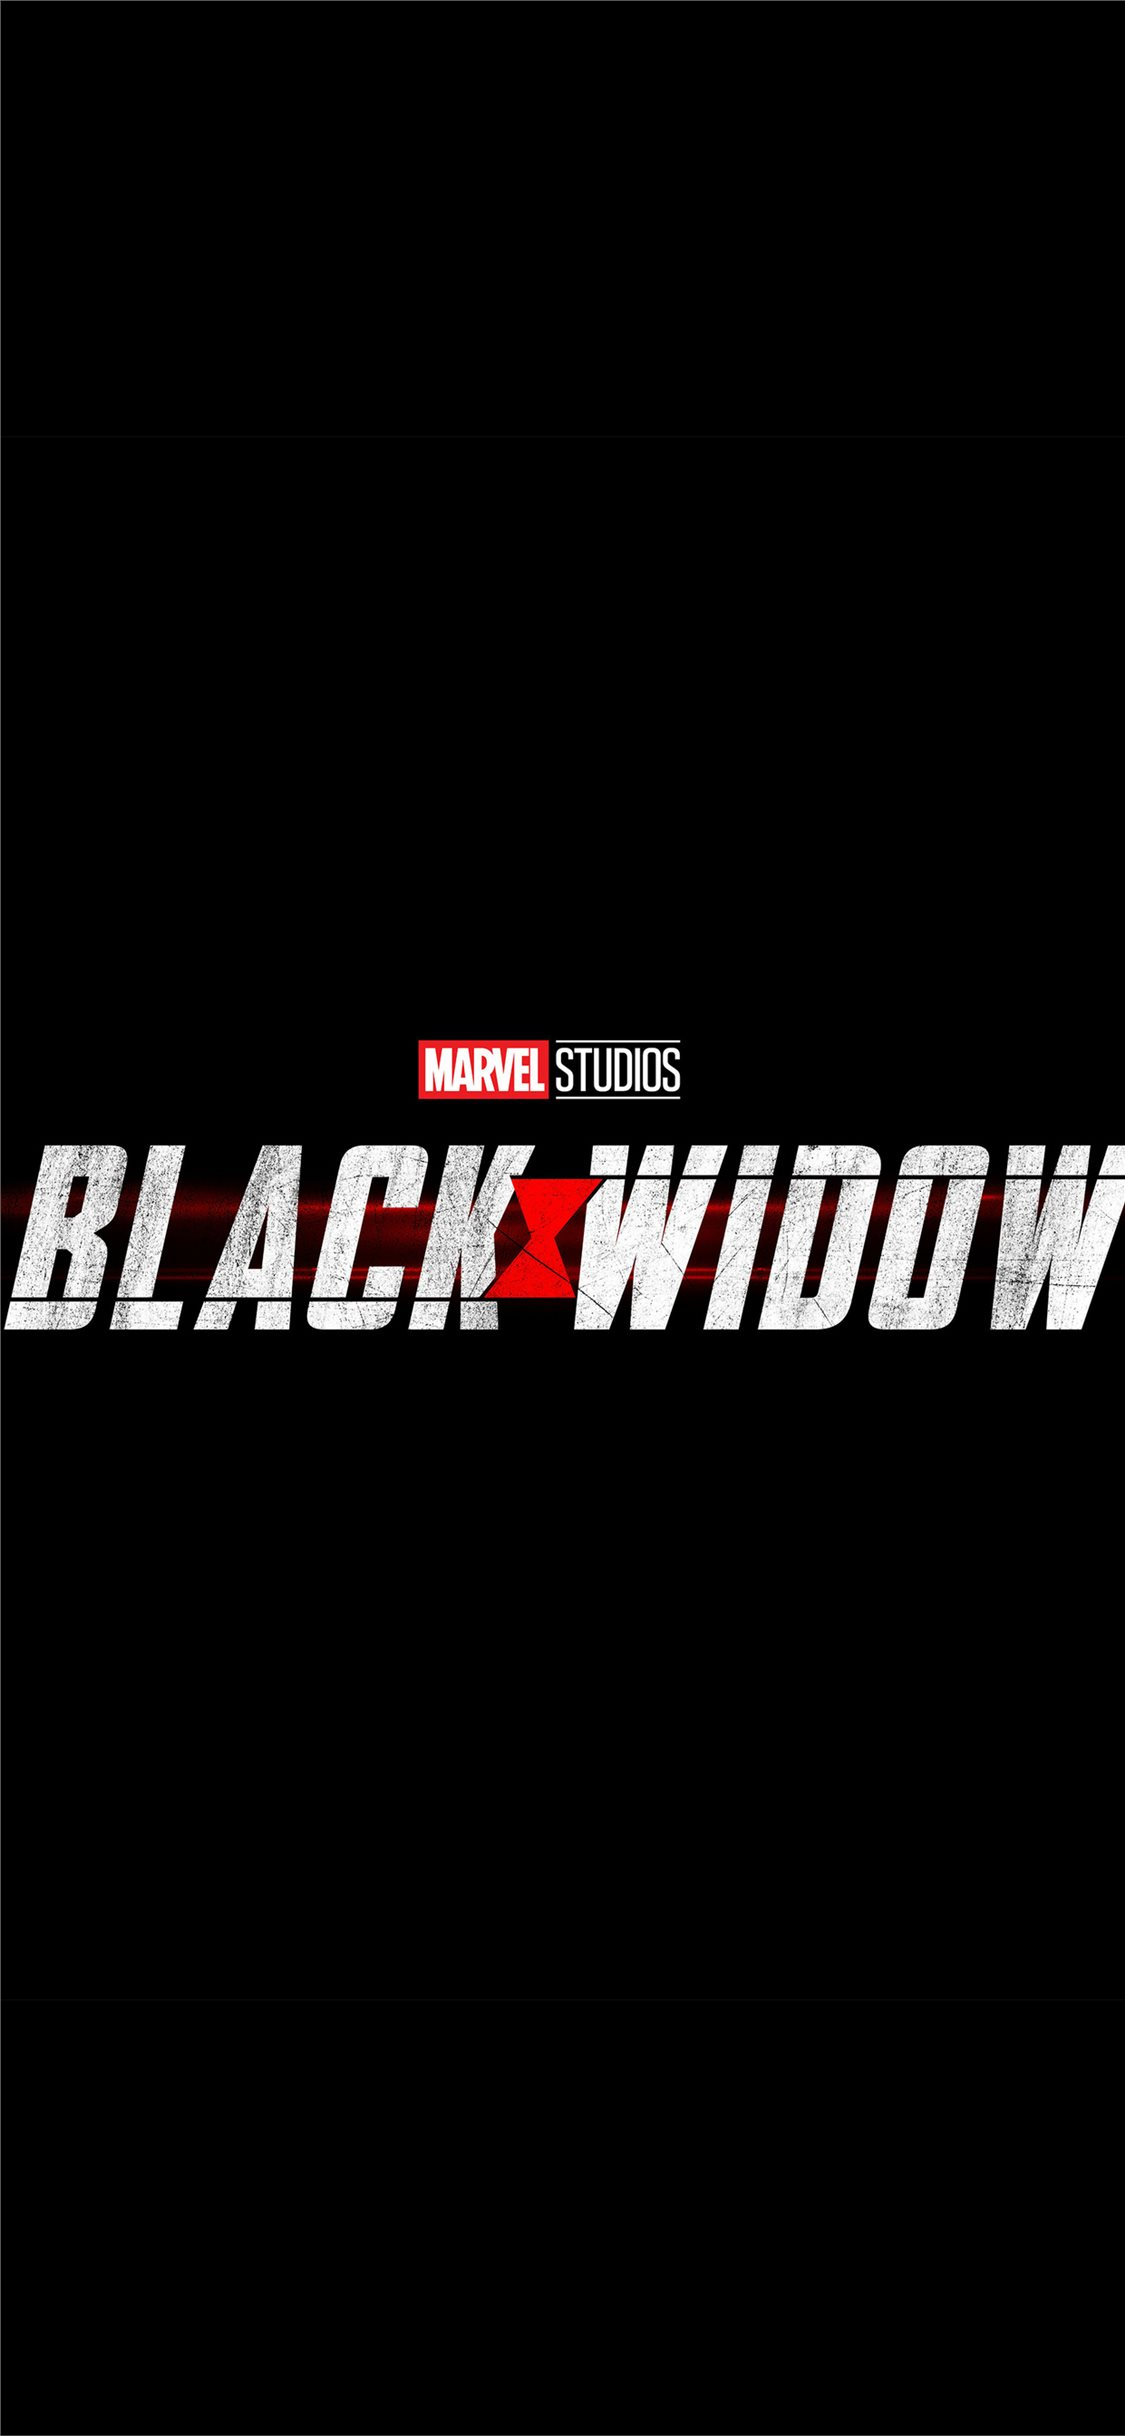 Black Widow 2020 Movie Iphone X Wallpapers Free Download